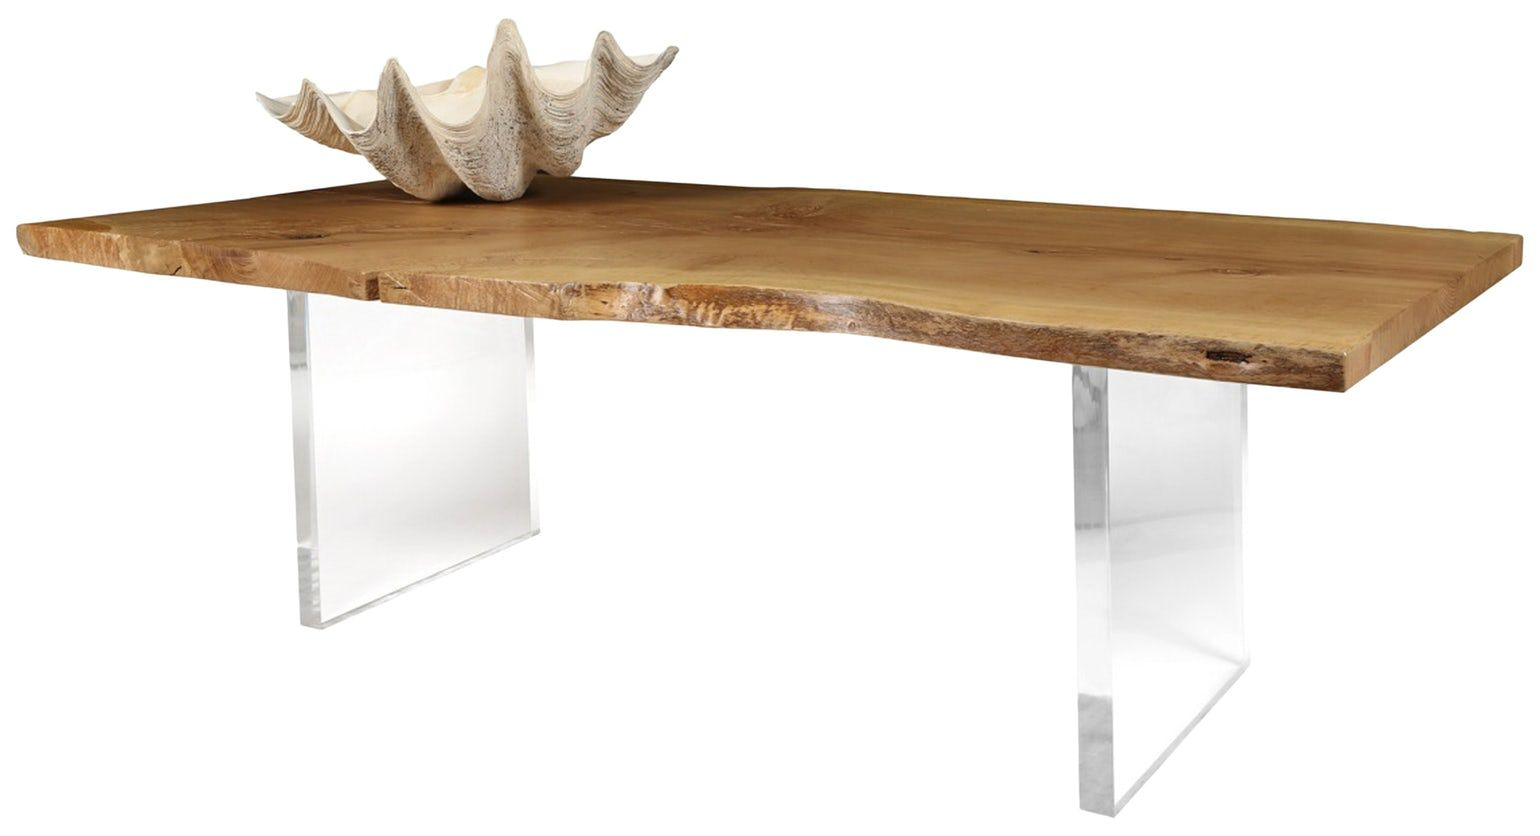 Cannes dining table contemporary midcentury modern organic acrylic wood dining room table by mimi london inc